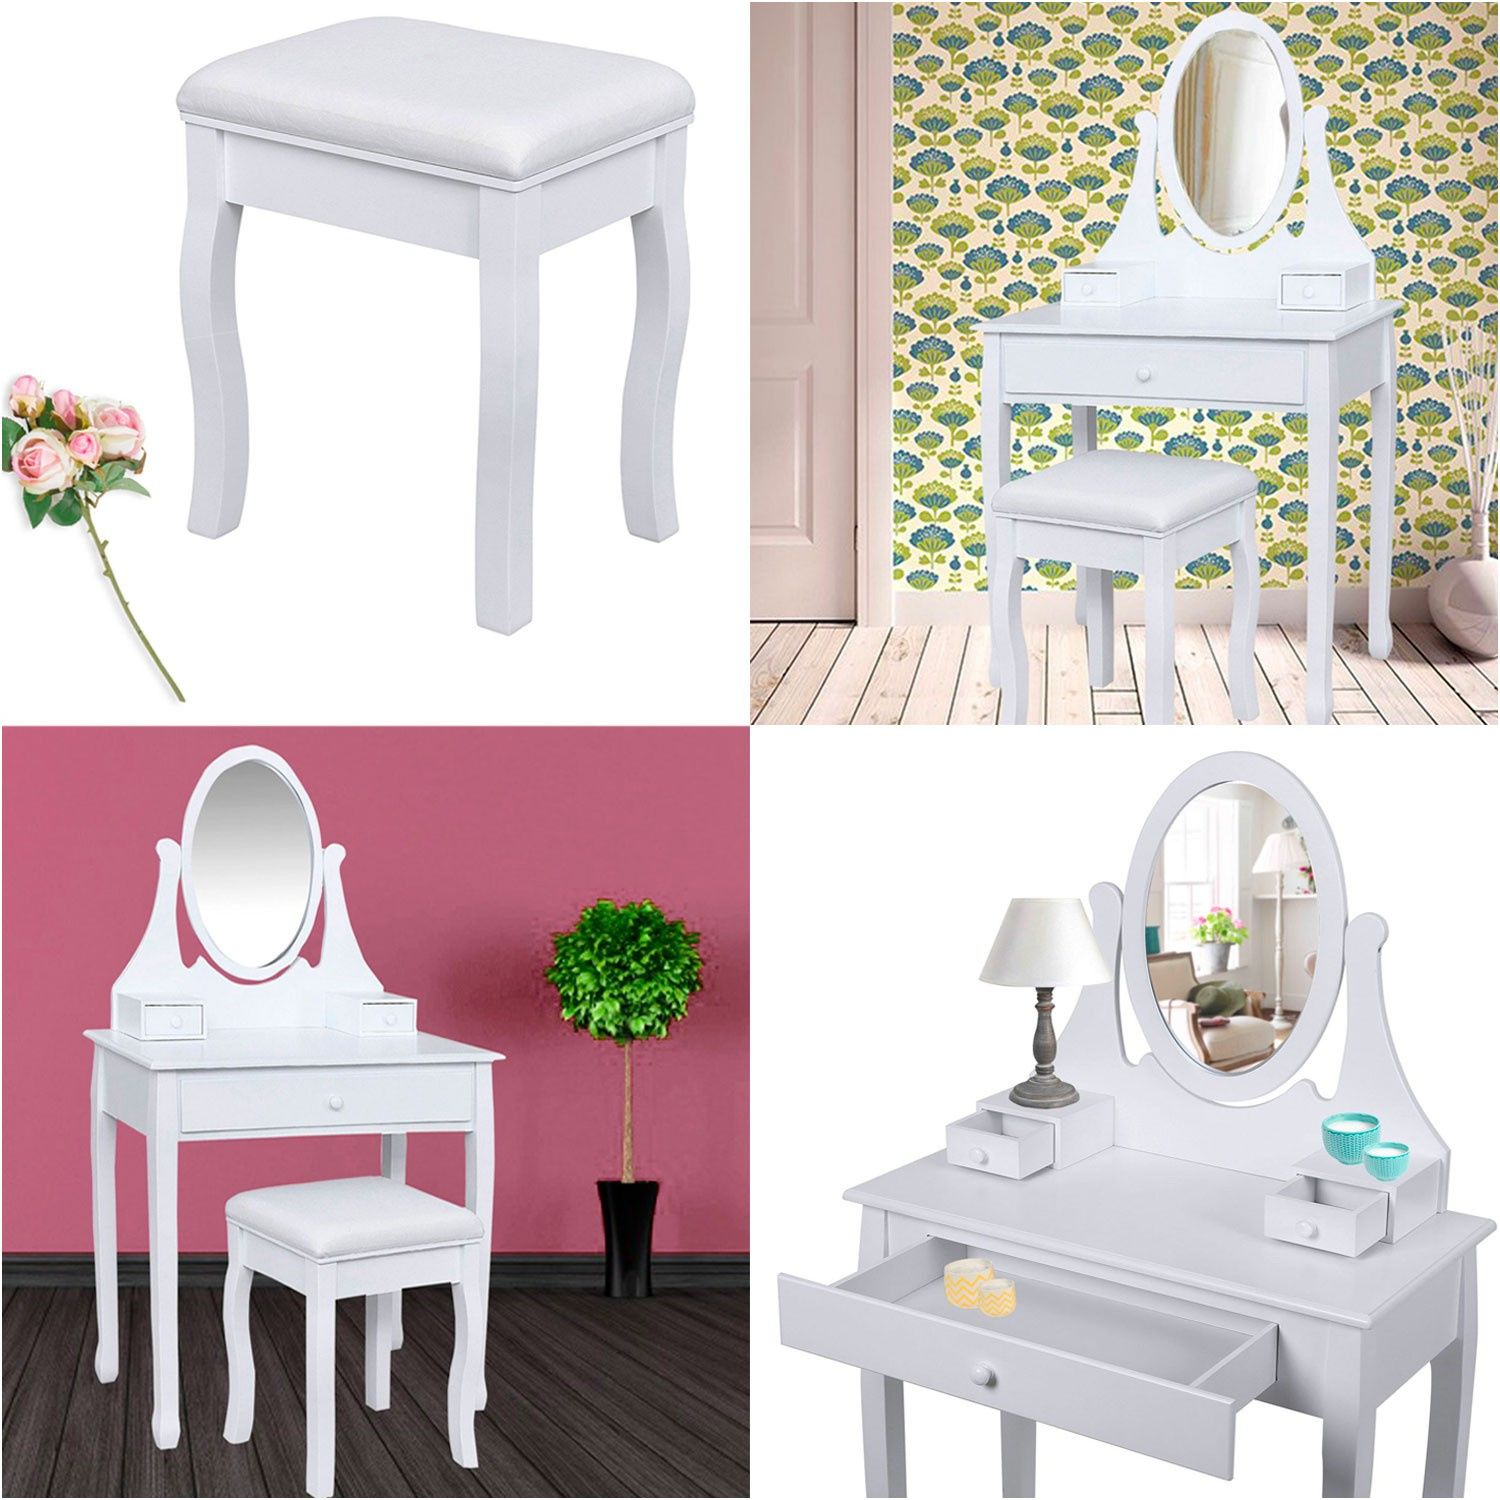 9 Incroyable Coiffeuse Meuble Cdiscount Collection Coiffeuse Meuble Miroir Coiffeuse Table Haute Bois